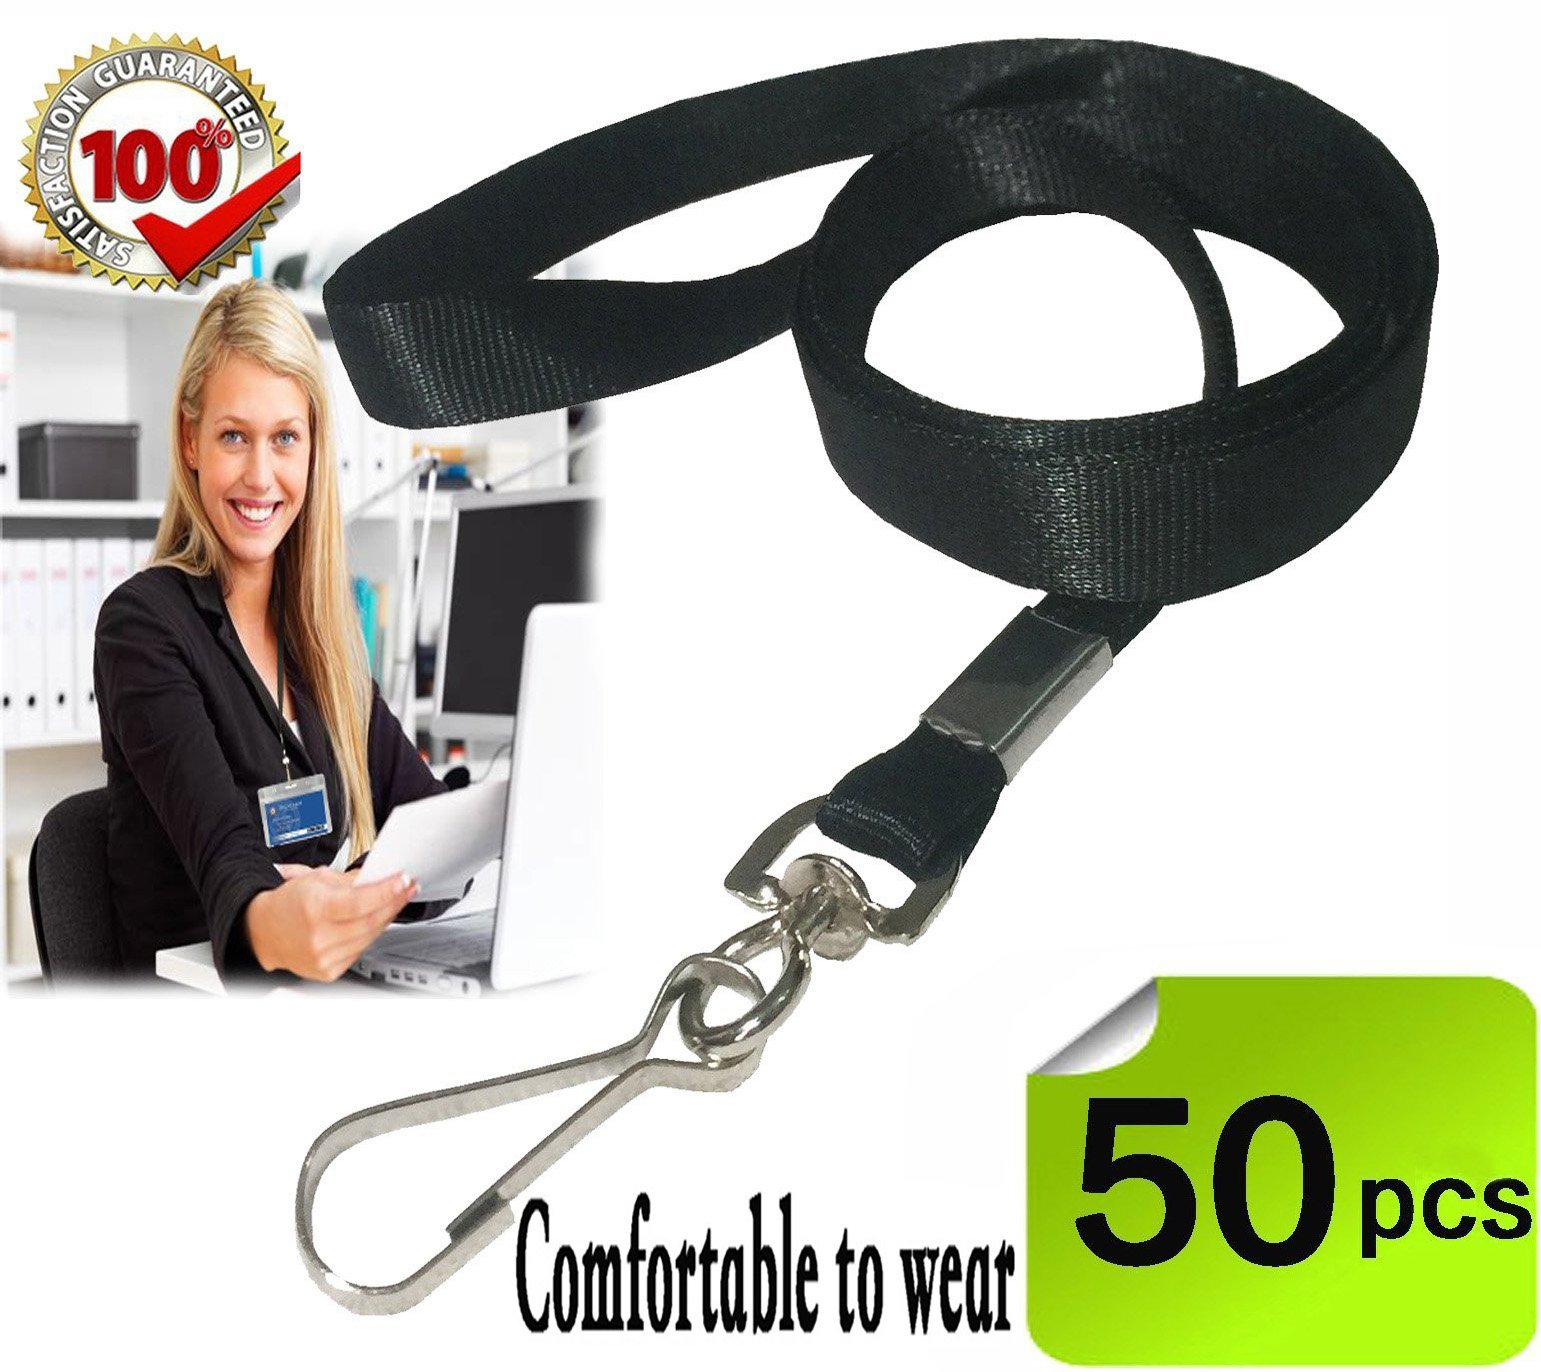 Bulk Lanyard,Black Lanyards for Id badges, lanyards with clip,Nylon Neck Flat Lanyards with Swivel Hook clips Durably Woven Lanyards 50 pack for Office ID Name Tags and Badge Holders Attachment(Black)